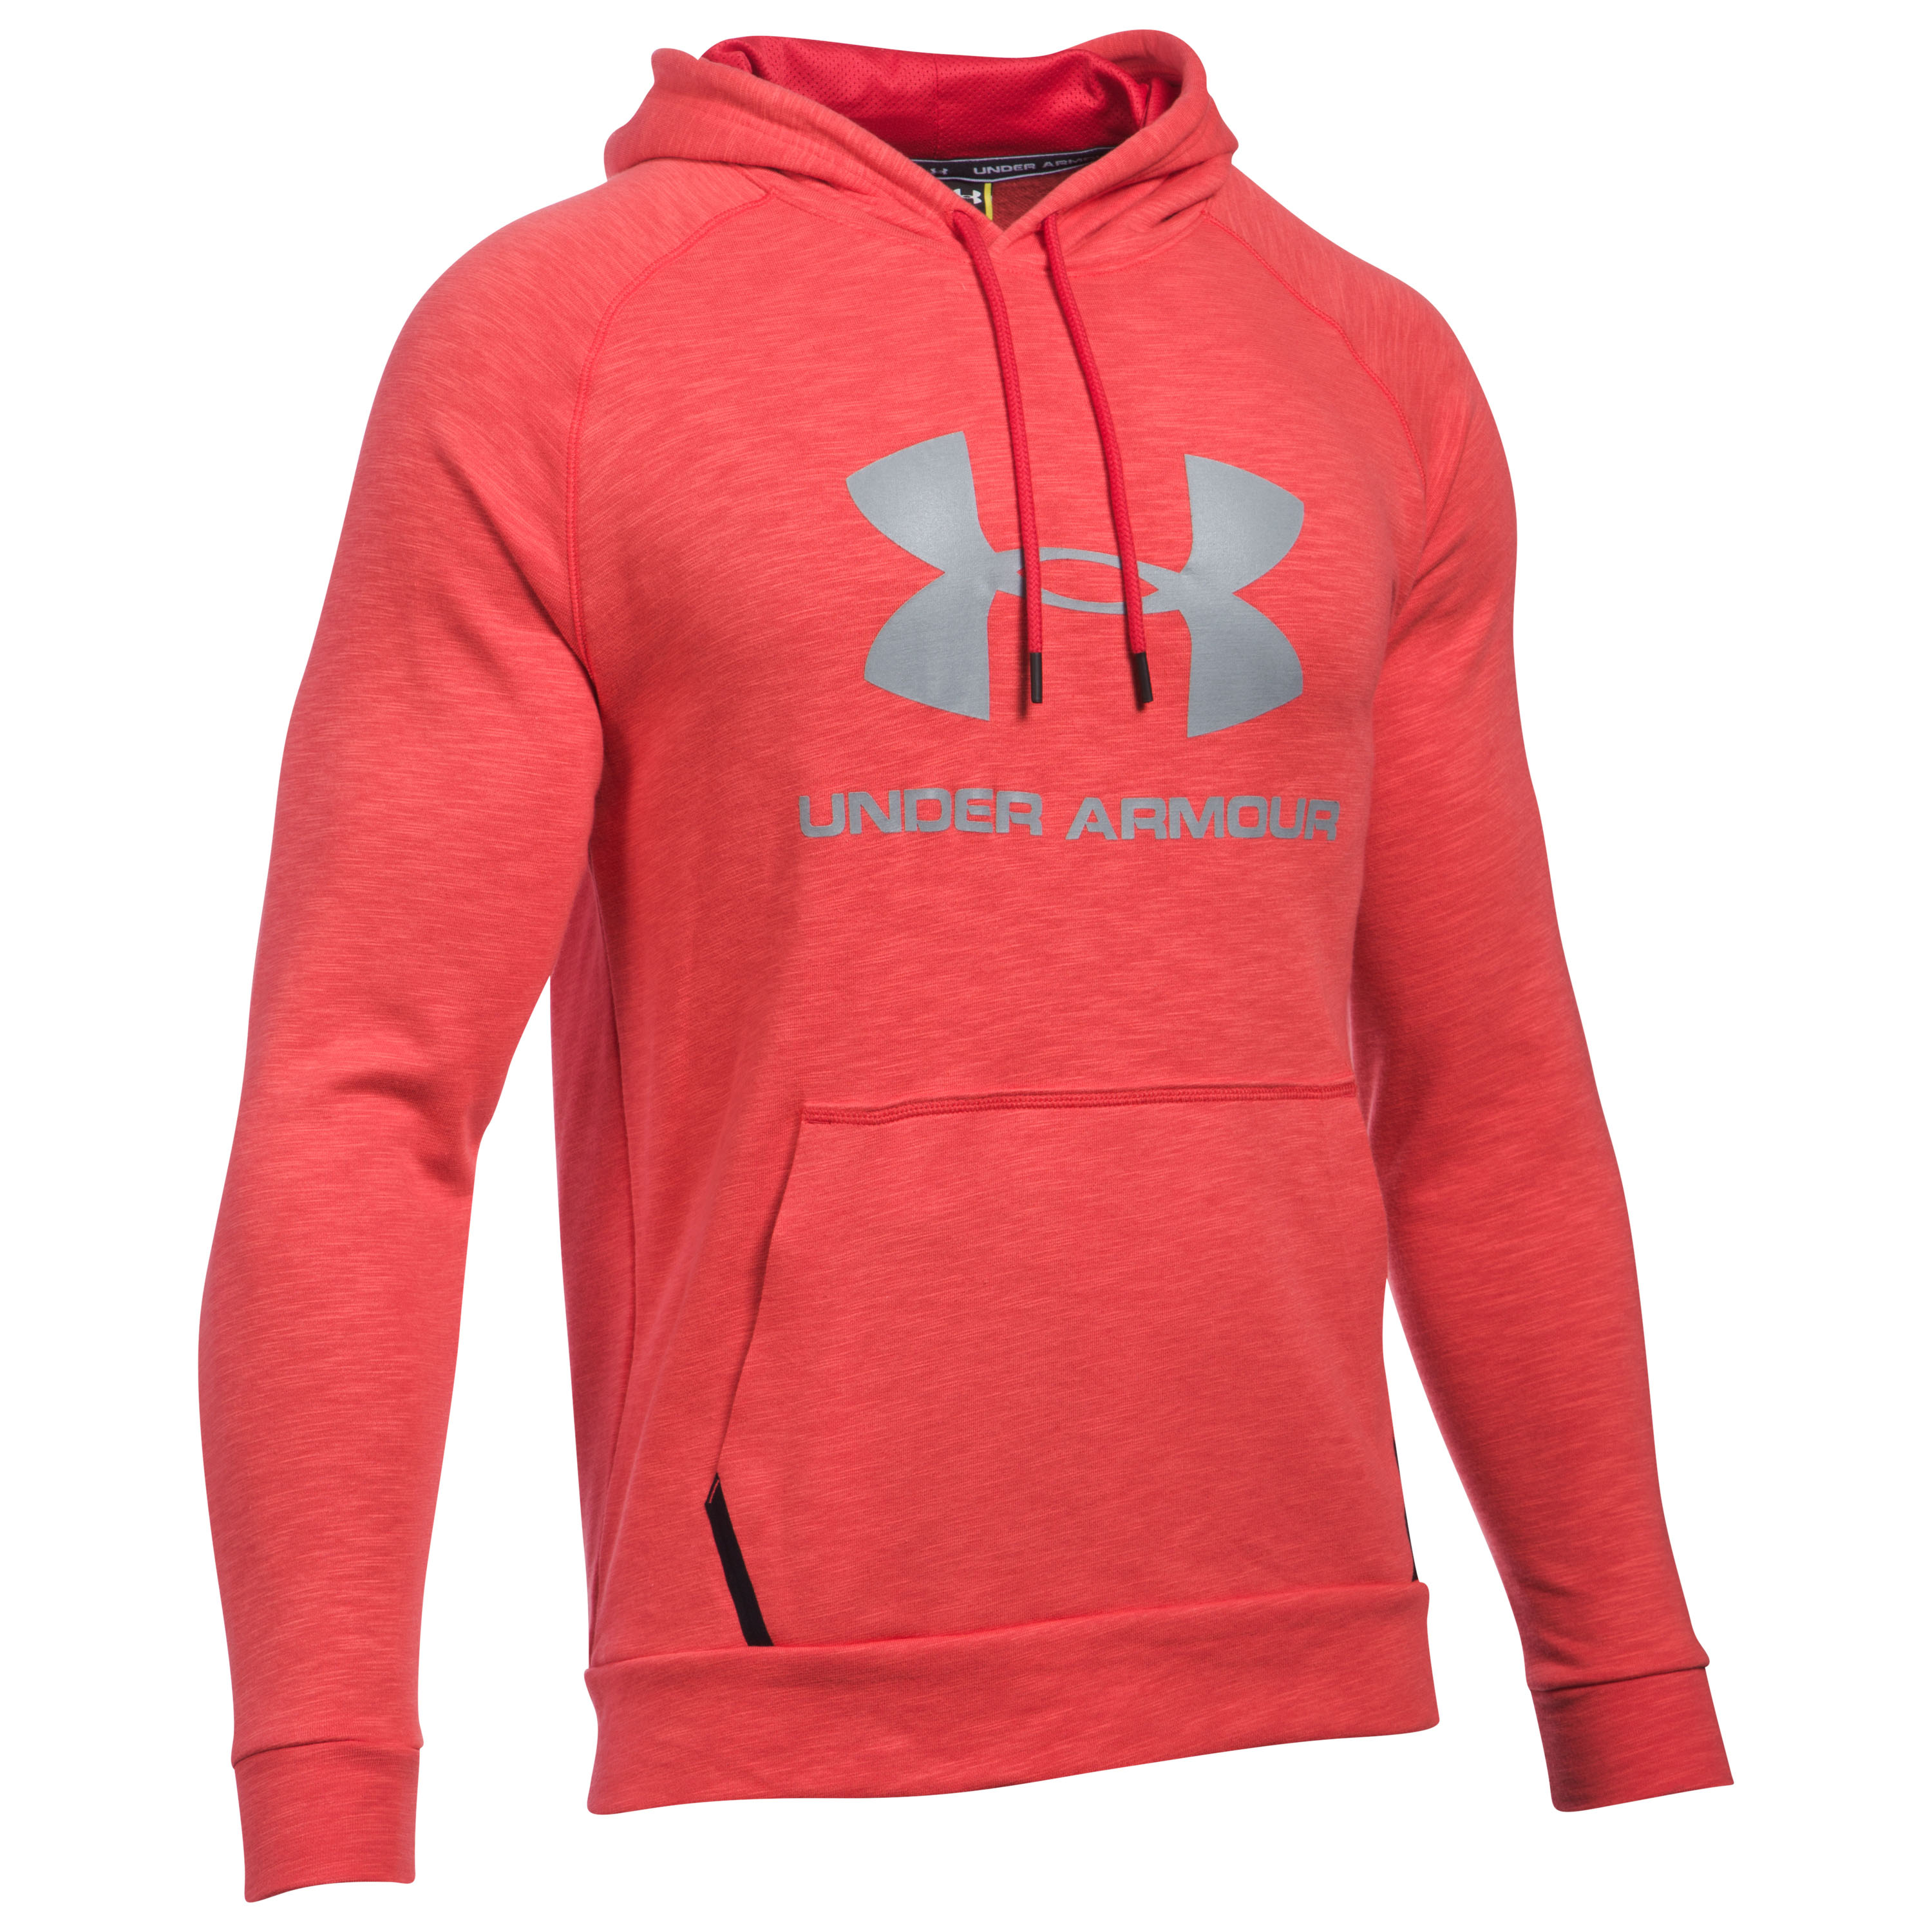 Under Armour Fitness Pullover Hoody Sportstyle Triblend rot